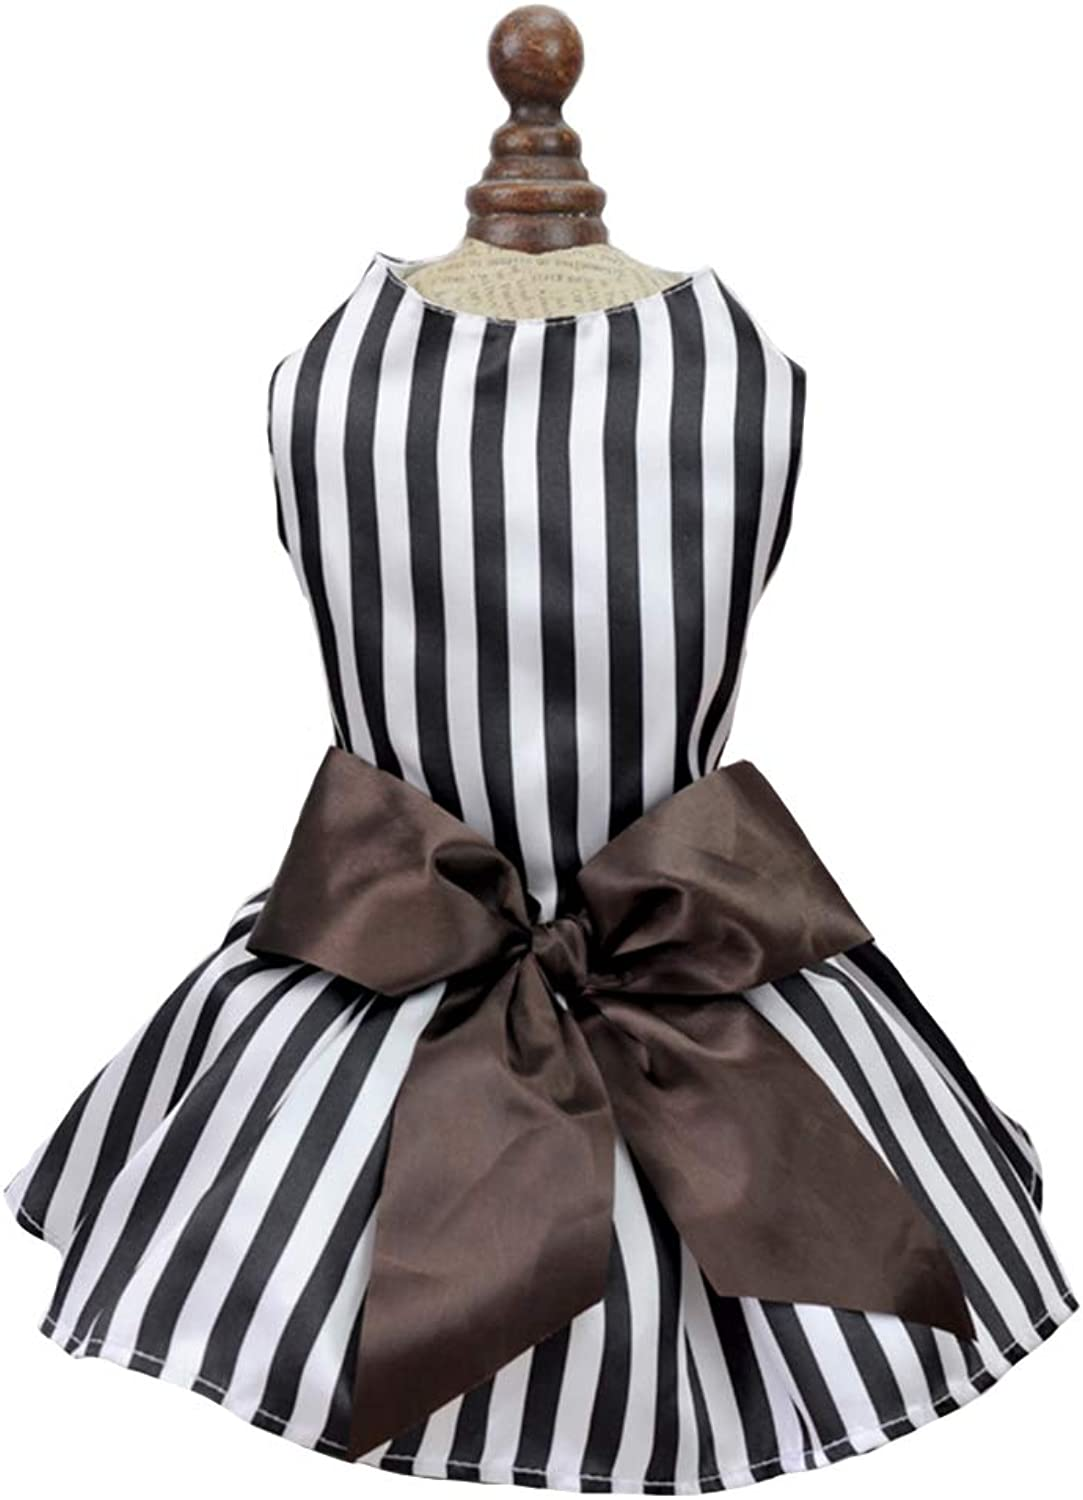 Dog Dress Black and White Stripes and Brown Bow for Summer Small Dog Princess Dress Cat BowKnot,L